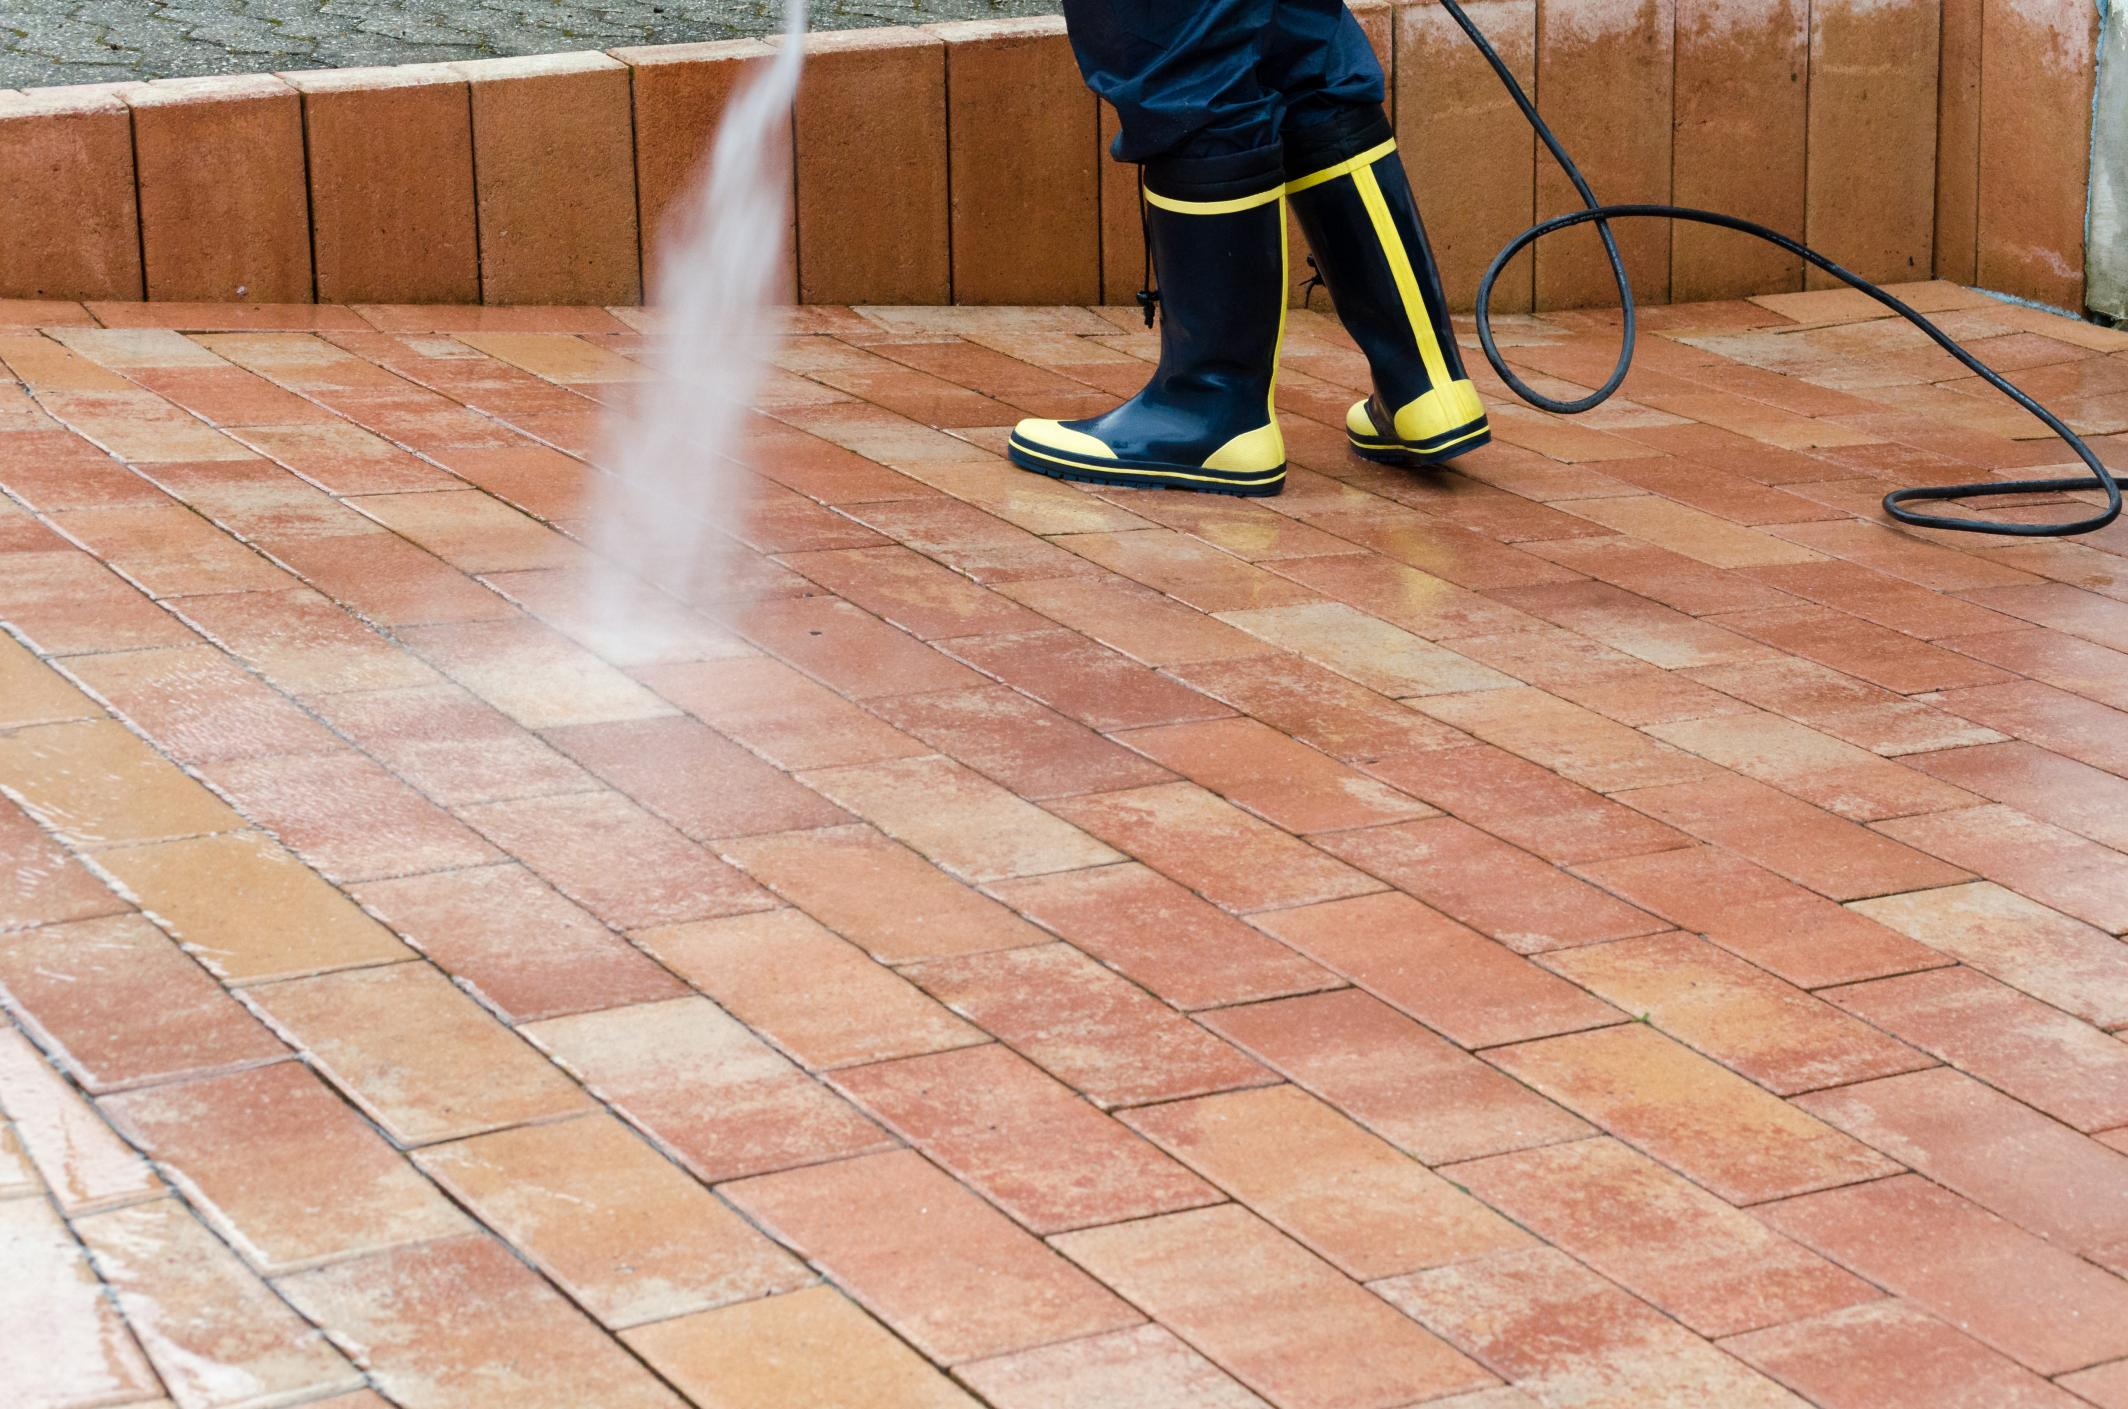 Worker pressure cleaning the ground